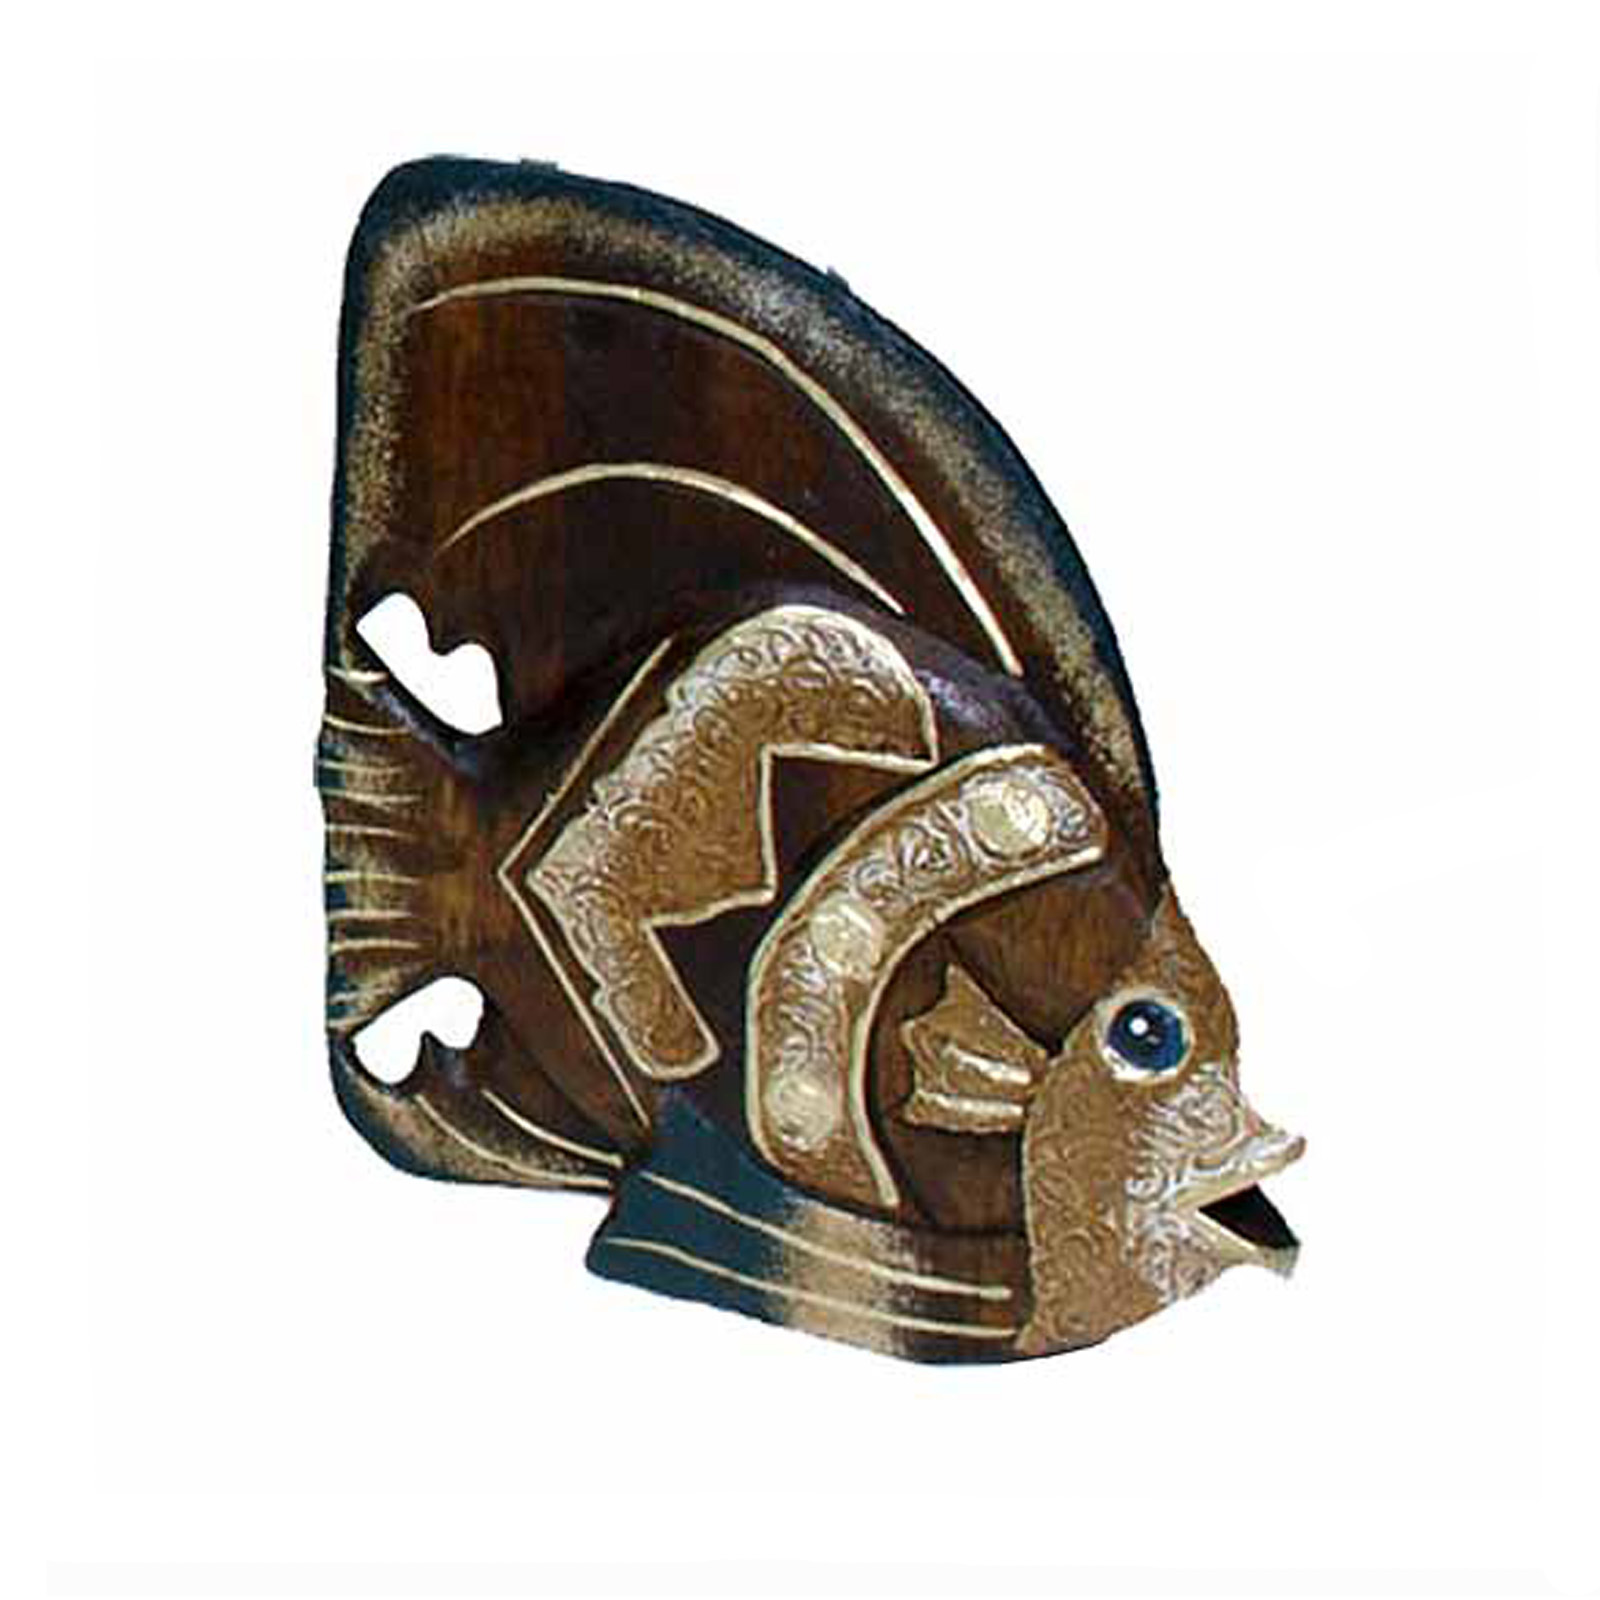 wood-curved-fish-statue-1600.jpg